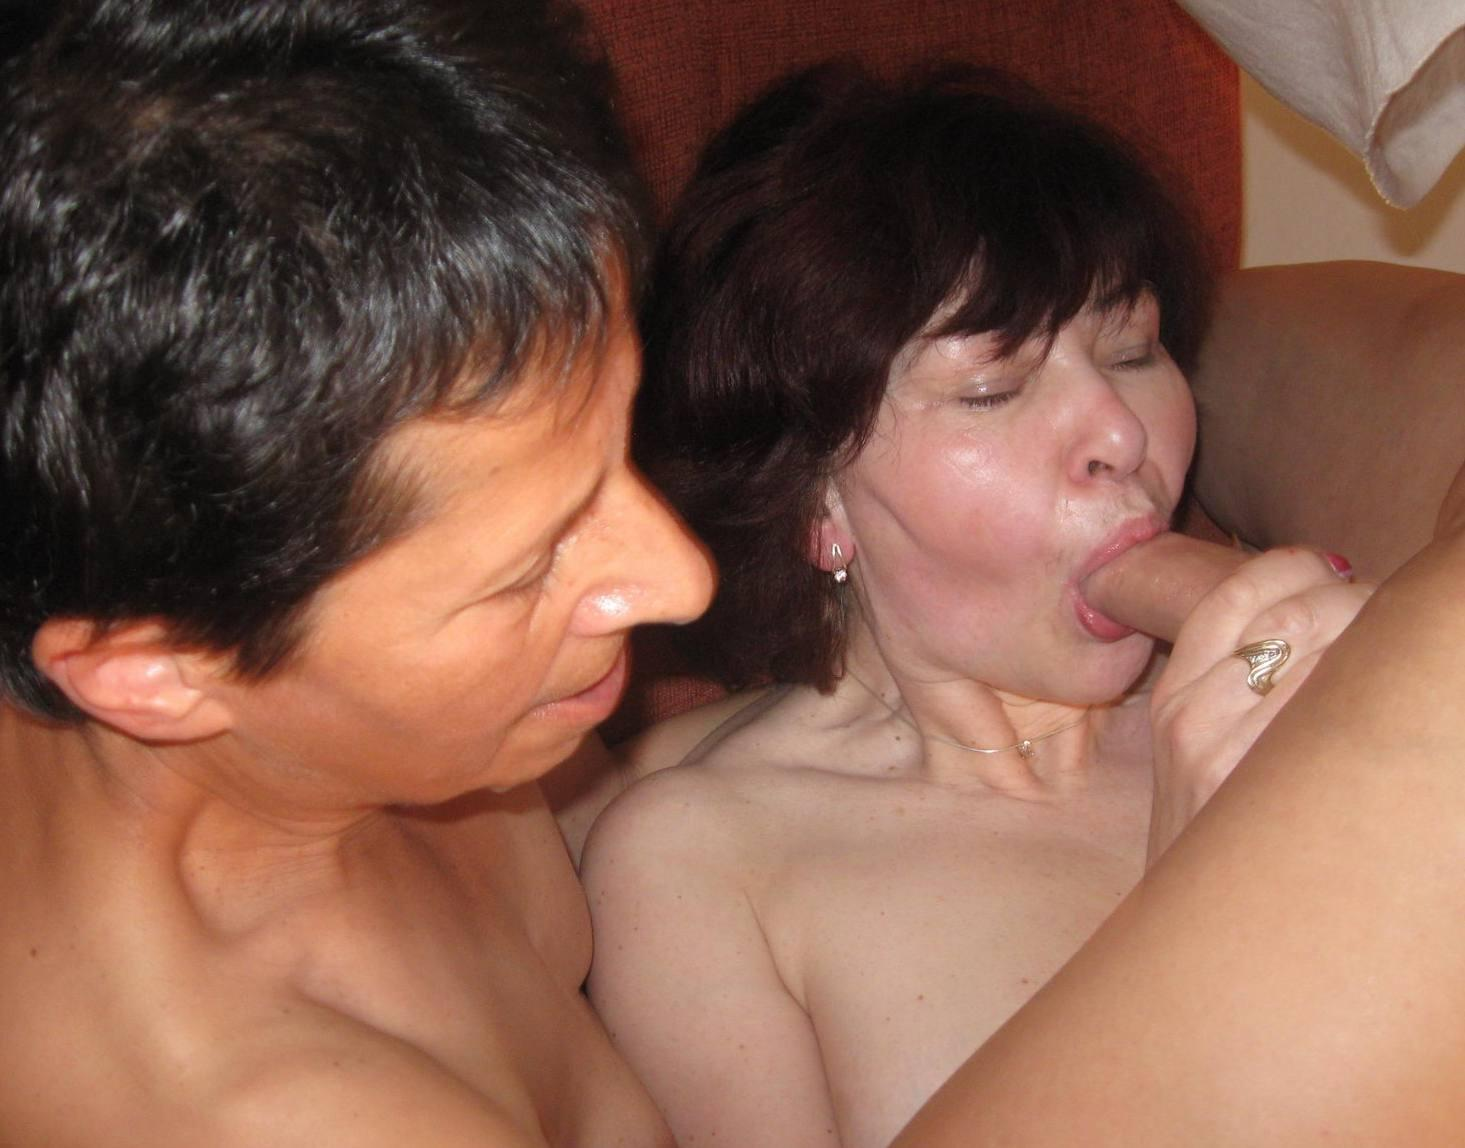 Pics mature swingers sex think, that